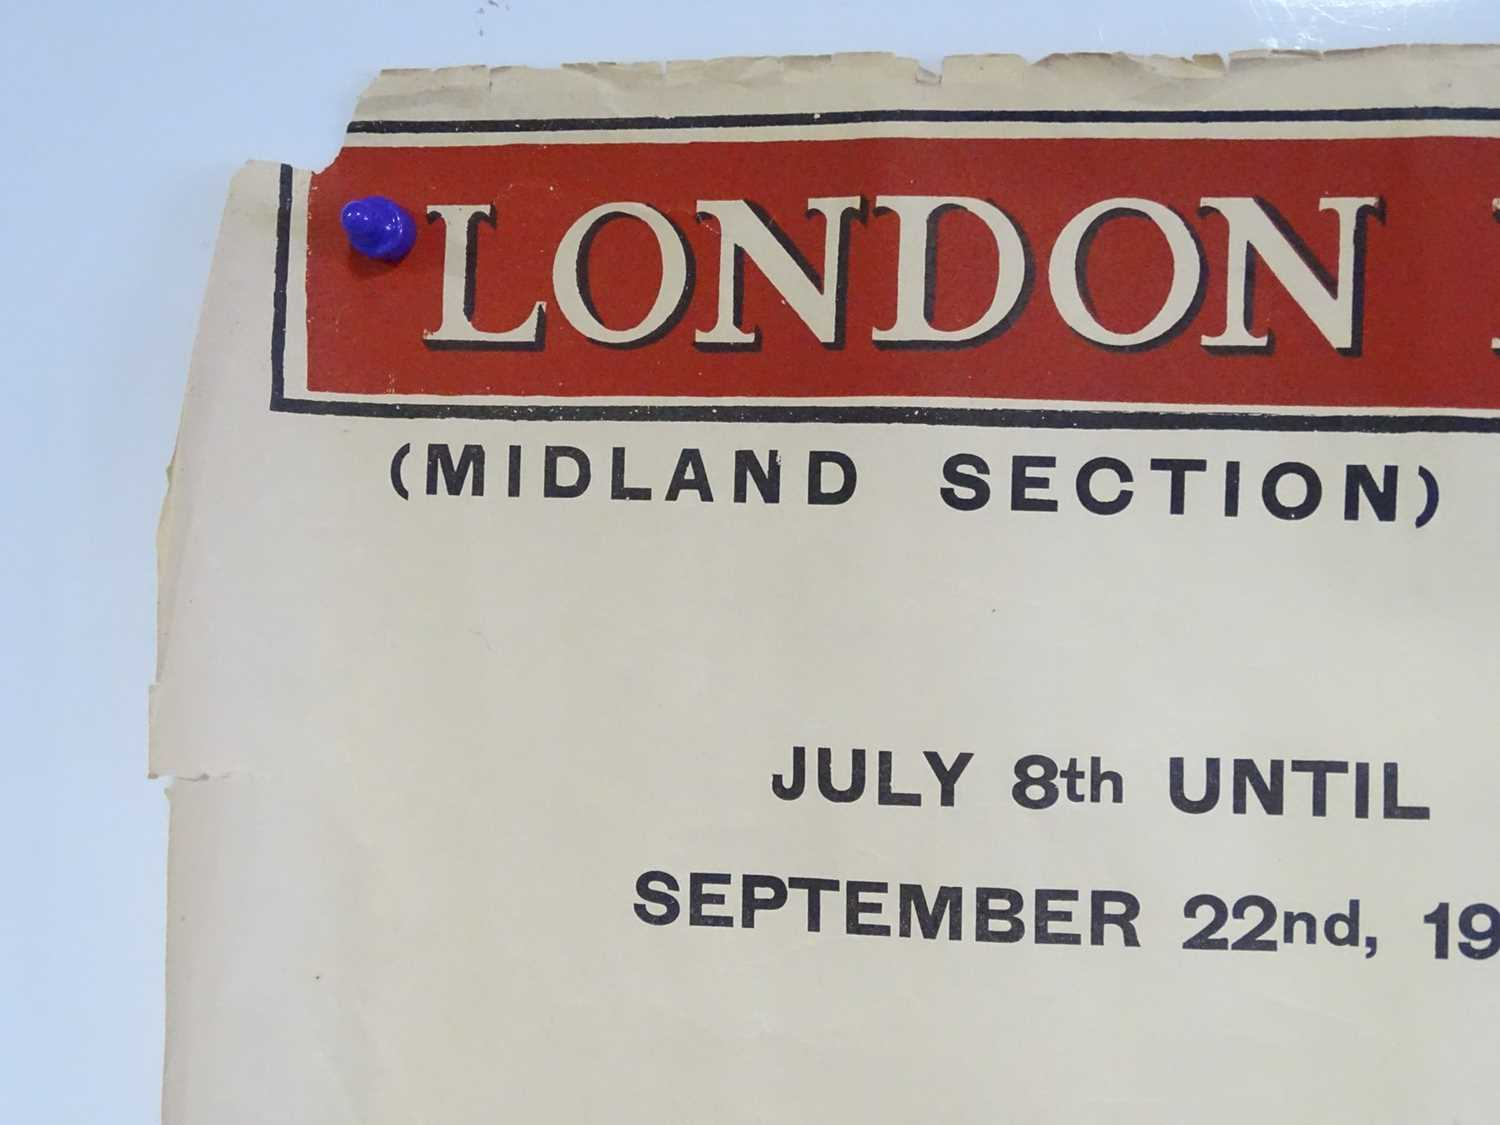 LONDON, MIDLAND and SCOTTISH RAILWAY Mainline (Midland Section) Timetable posters - July 8th - - Image 13 of 15